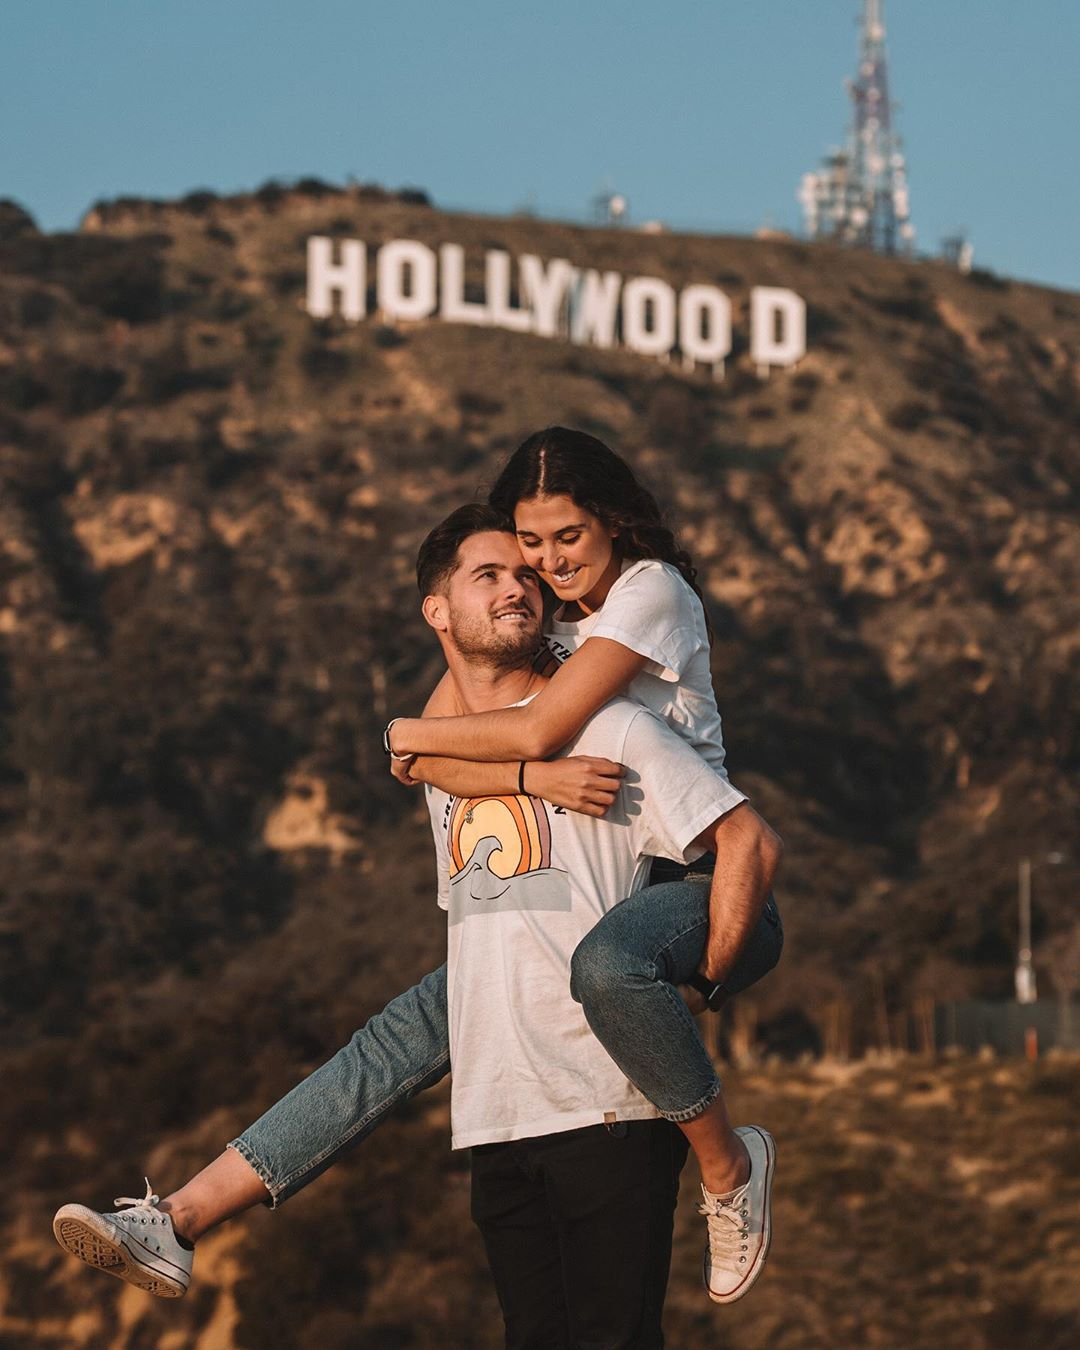 choosing holywood at on e of your honeymoon destination and get inpiration photos